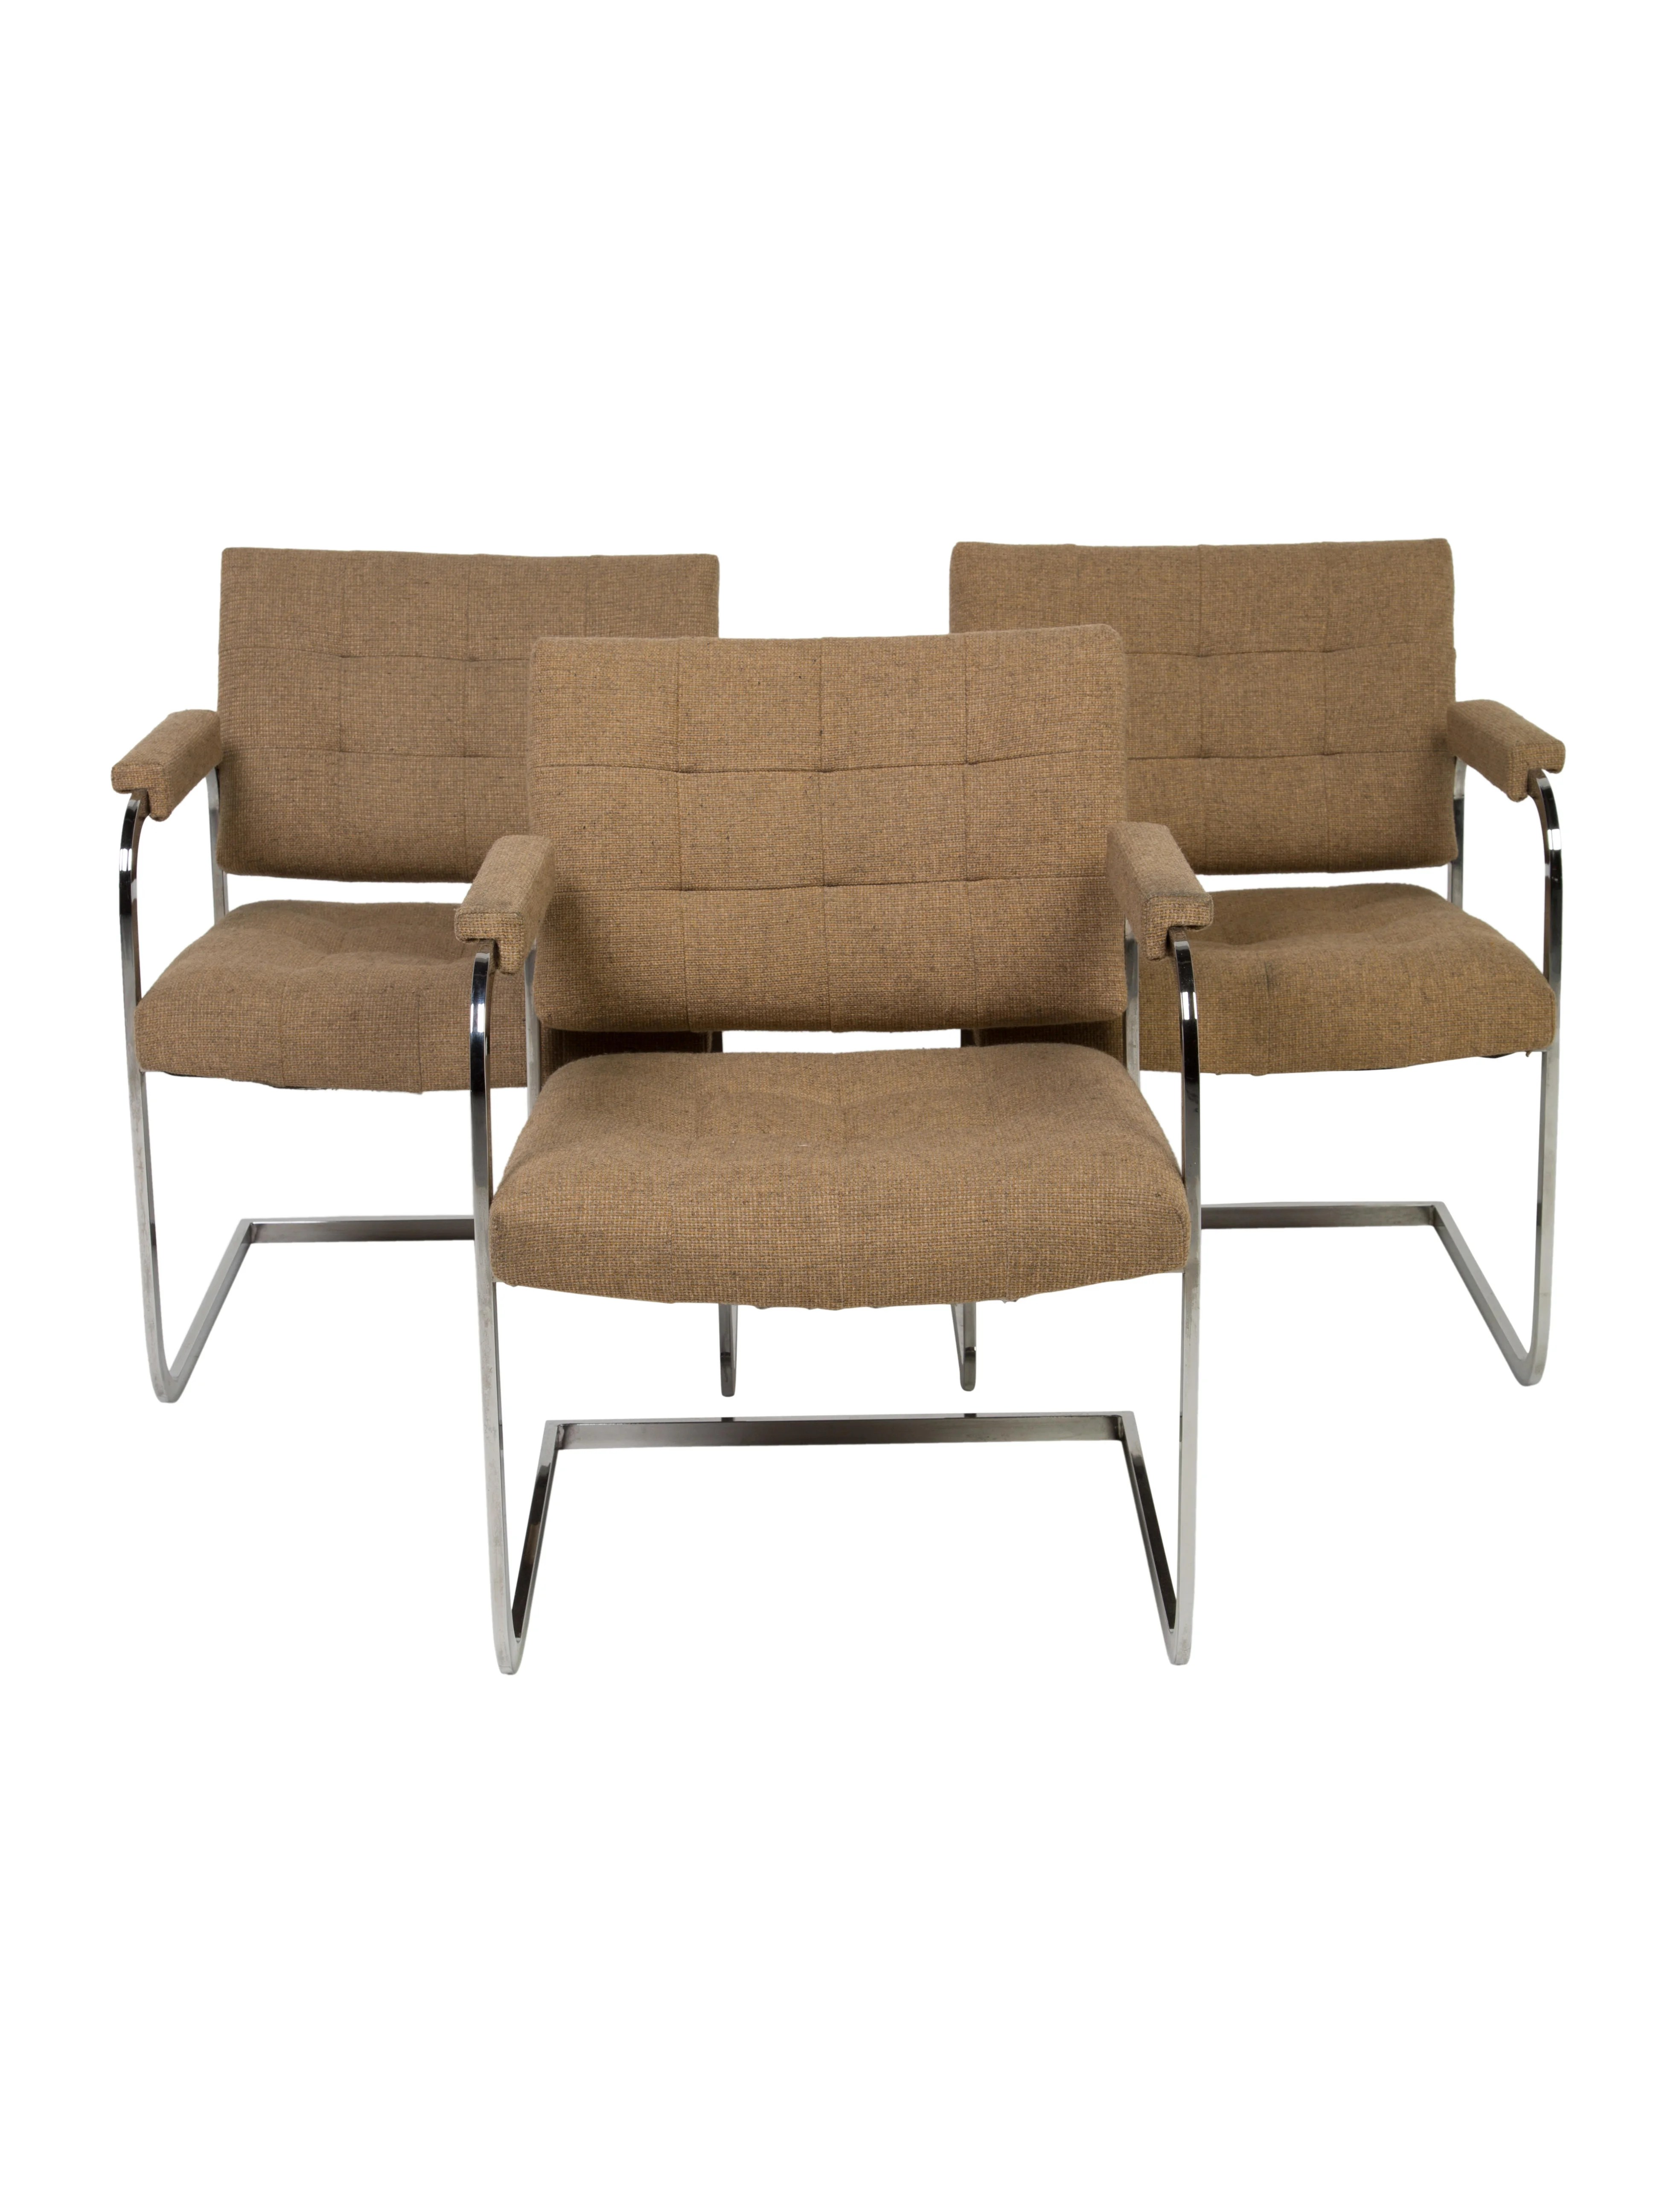 Patrician Furniture Company Armchairs